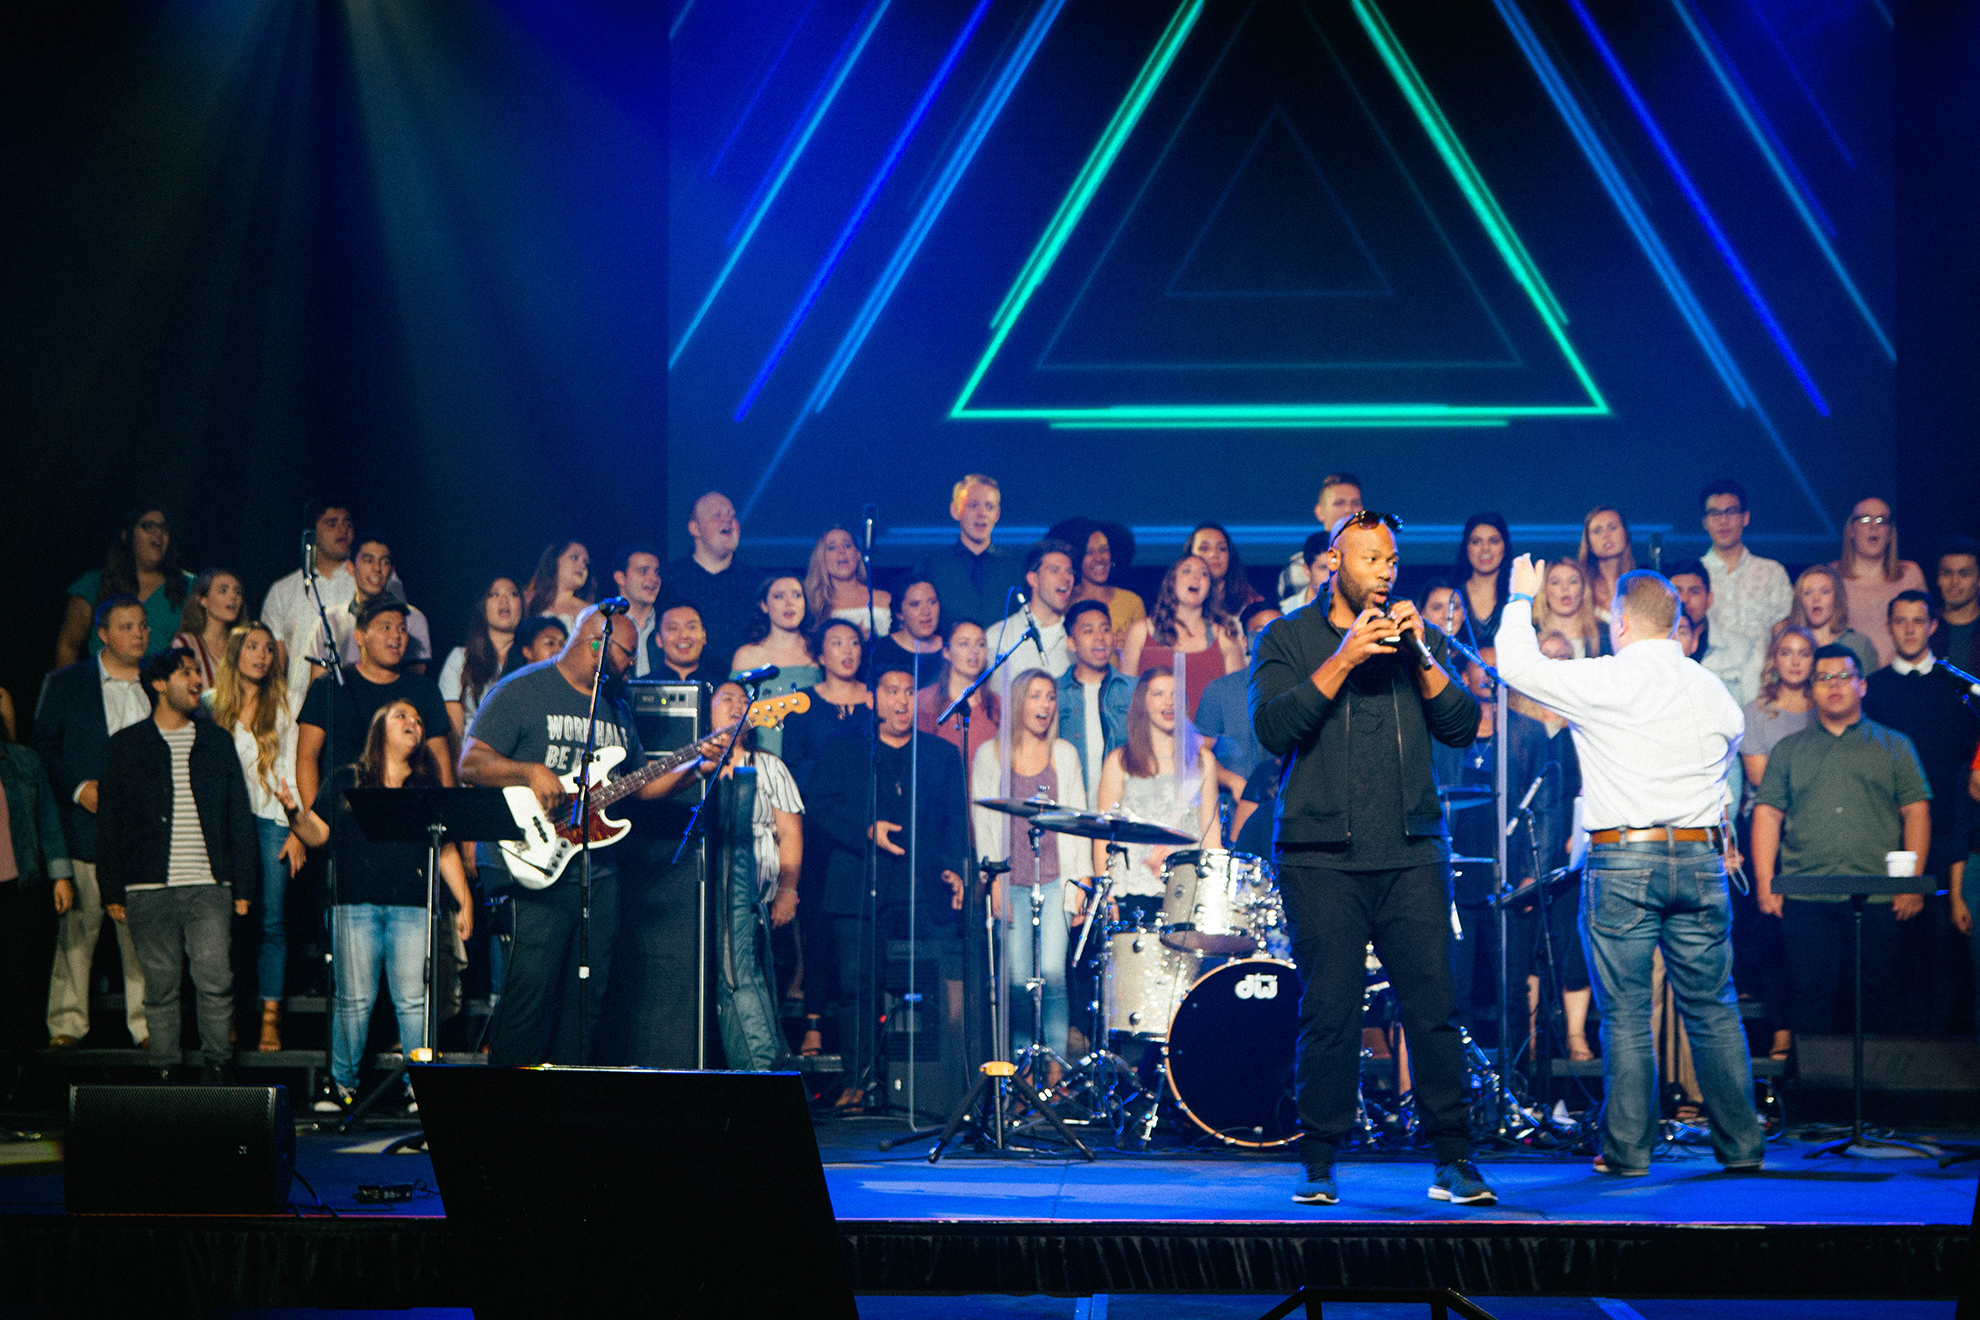 Uco Academic Calendar.University Choir And Orchestra Performs At International Worship